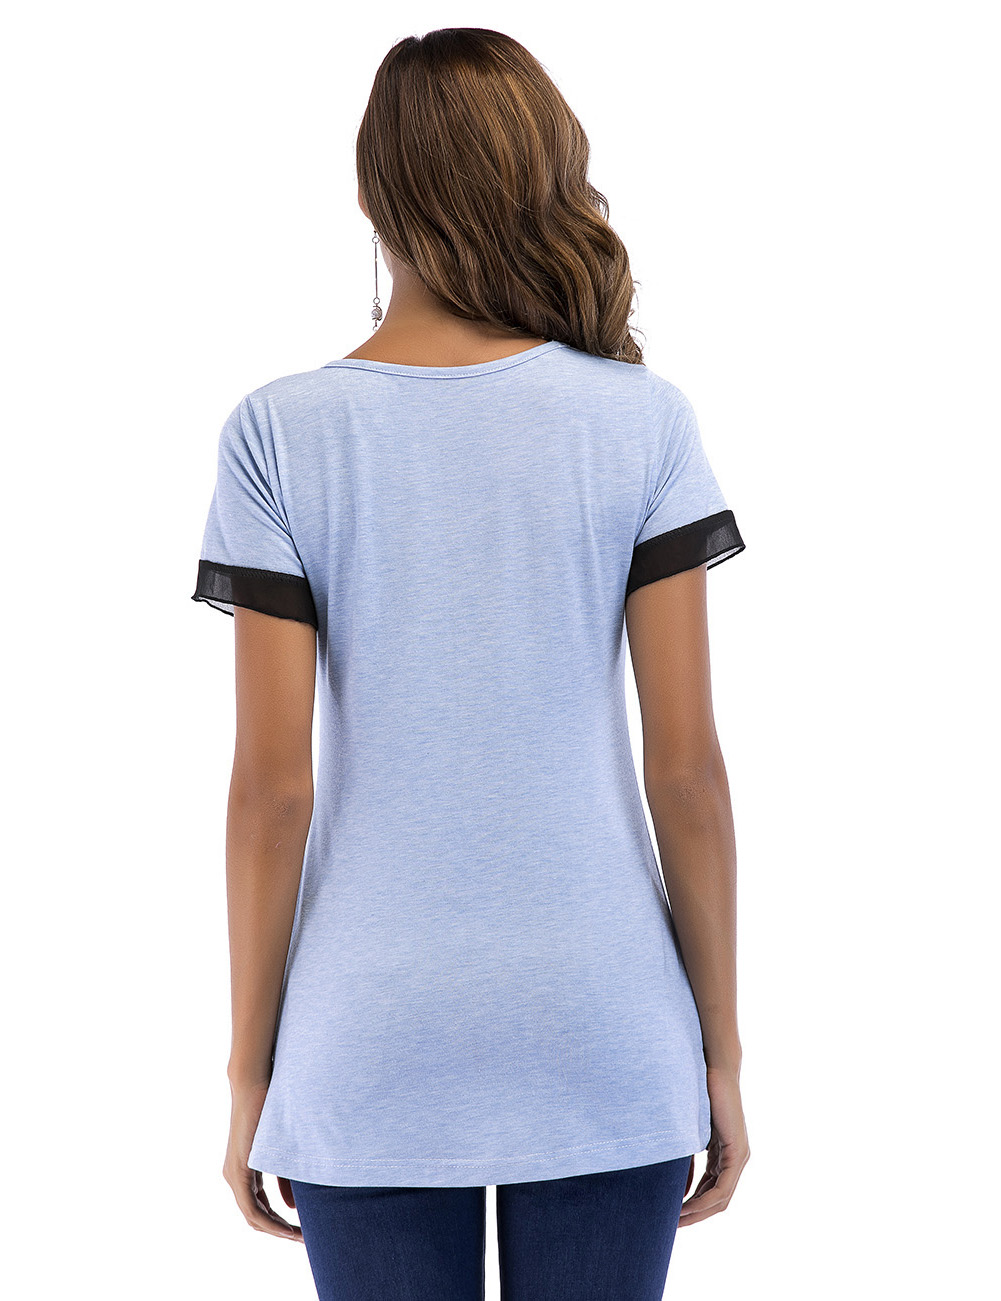 //cdn.affectcloud.com/hexinfashion/upload/imgs/Women_Clothing/Short_Sleeve/G185038-BU1/G185038-BU1-201911065dc2ae84b85ed.jpg